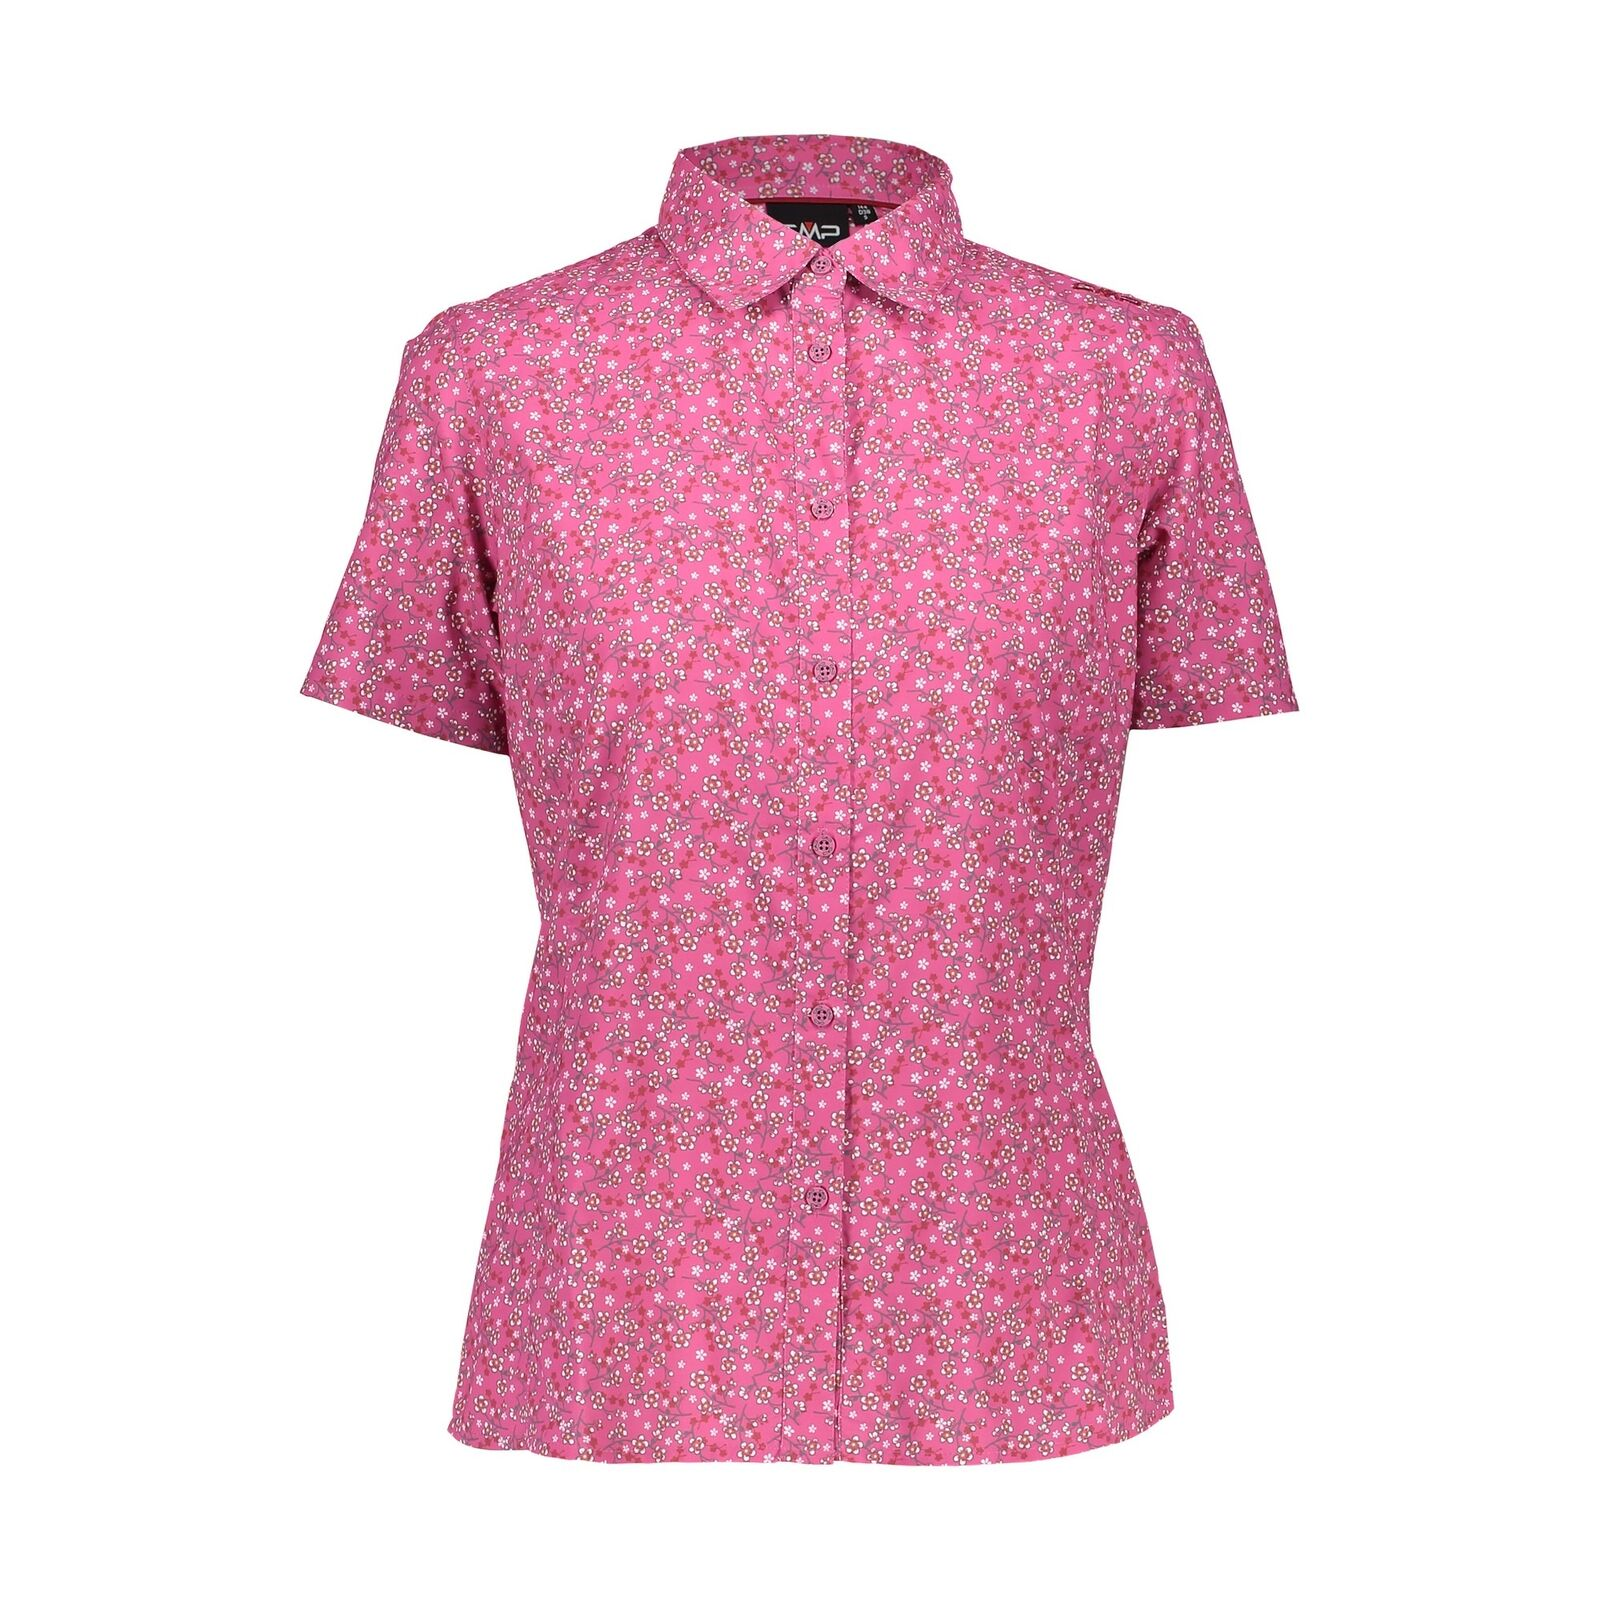 CMP woman shirt blouse fus a Breathable Elastic Antibacterial  uv predection  best prices and freshest styles